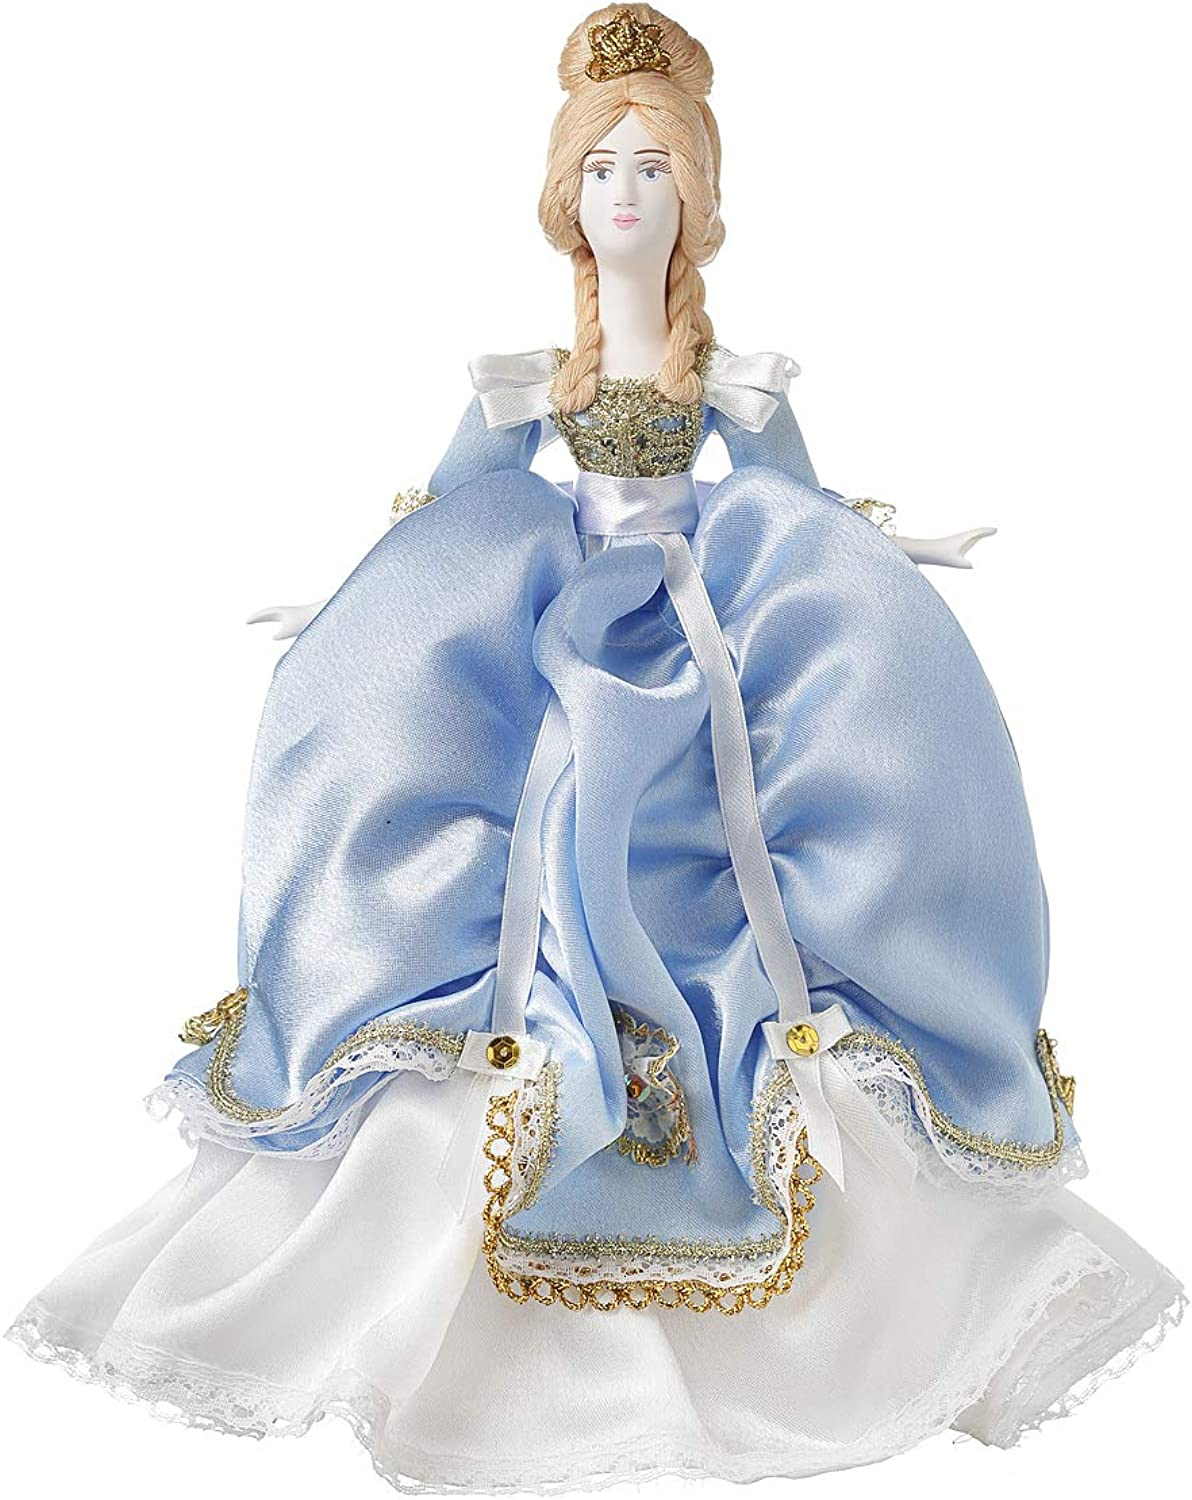 Danilasouvenirs Russian handmade Porcelain Doll in the dress of noblewoman 28 cm  2518